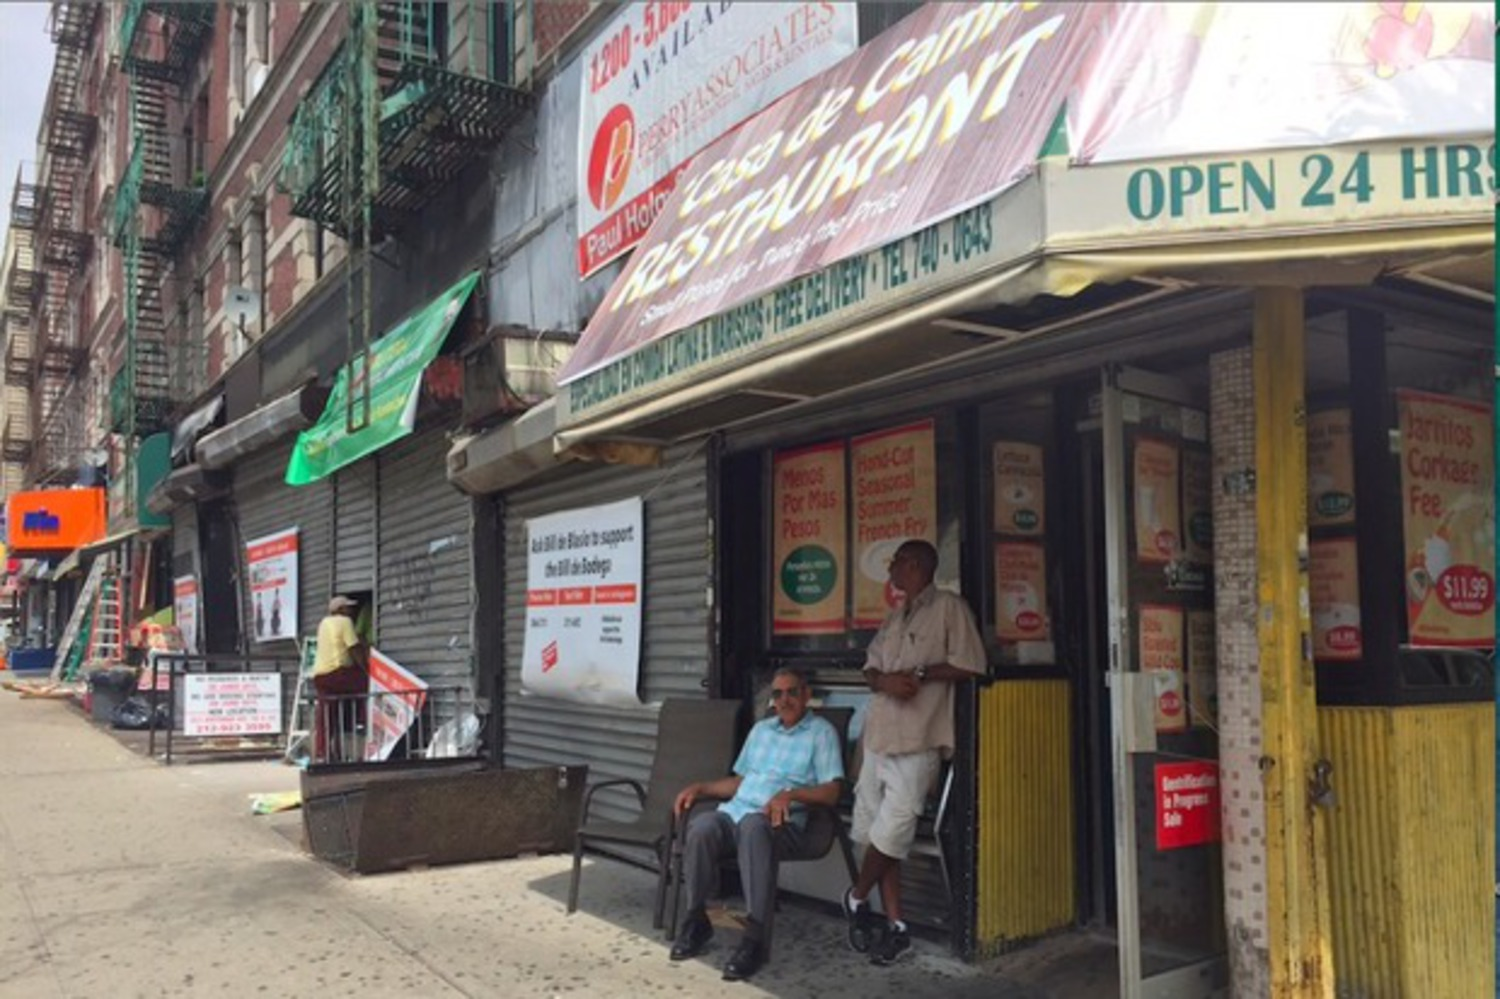 Washington Heights 'Gentrification in Progress Sale'